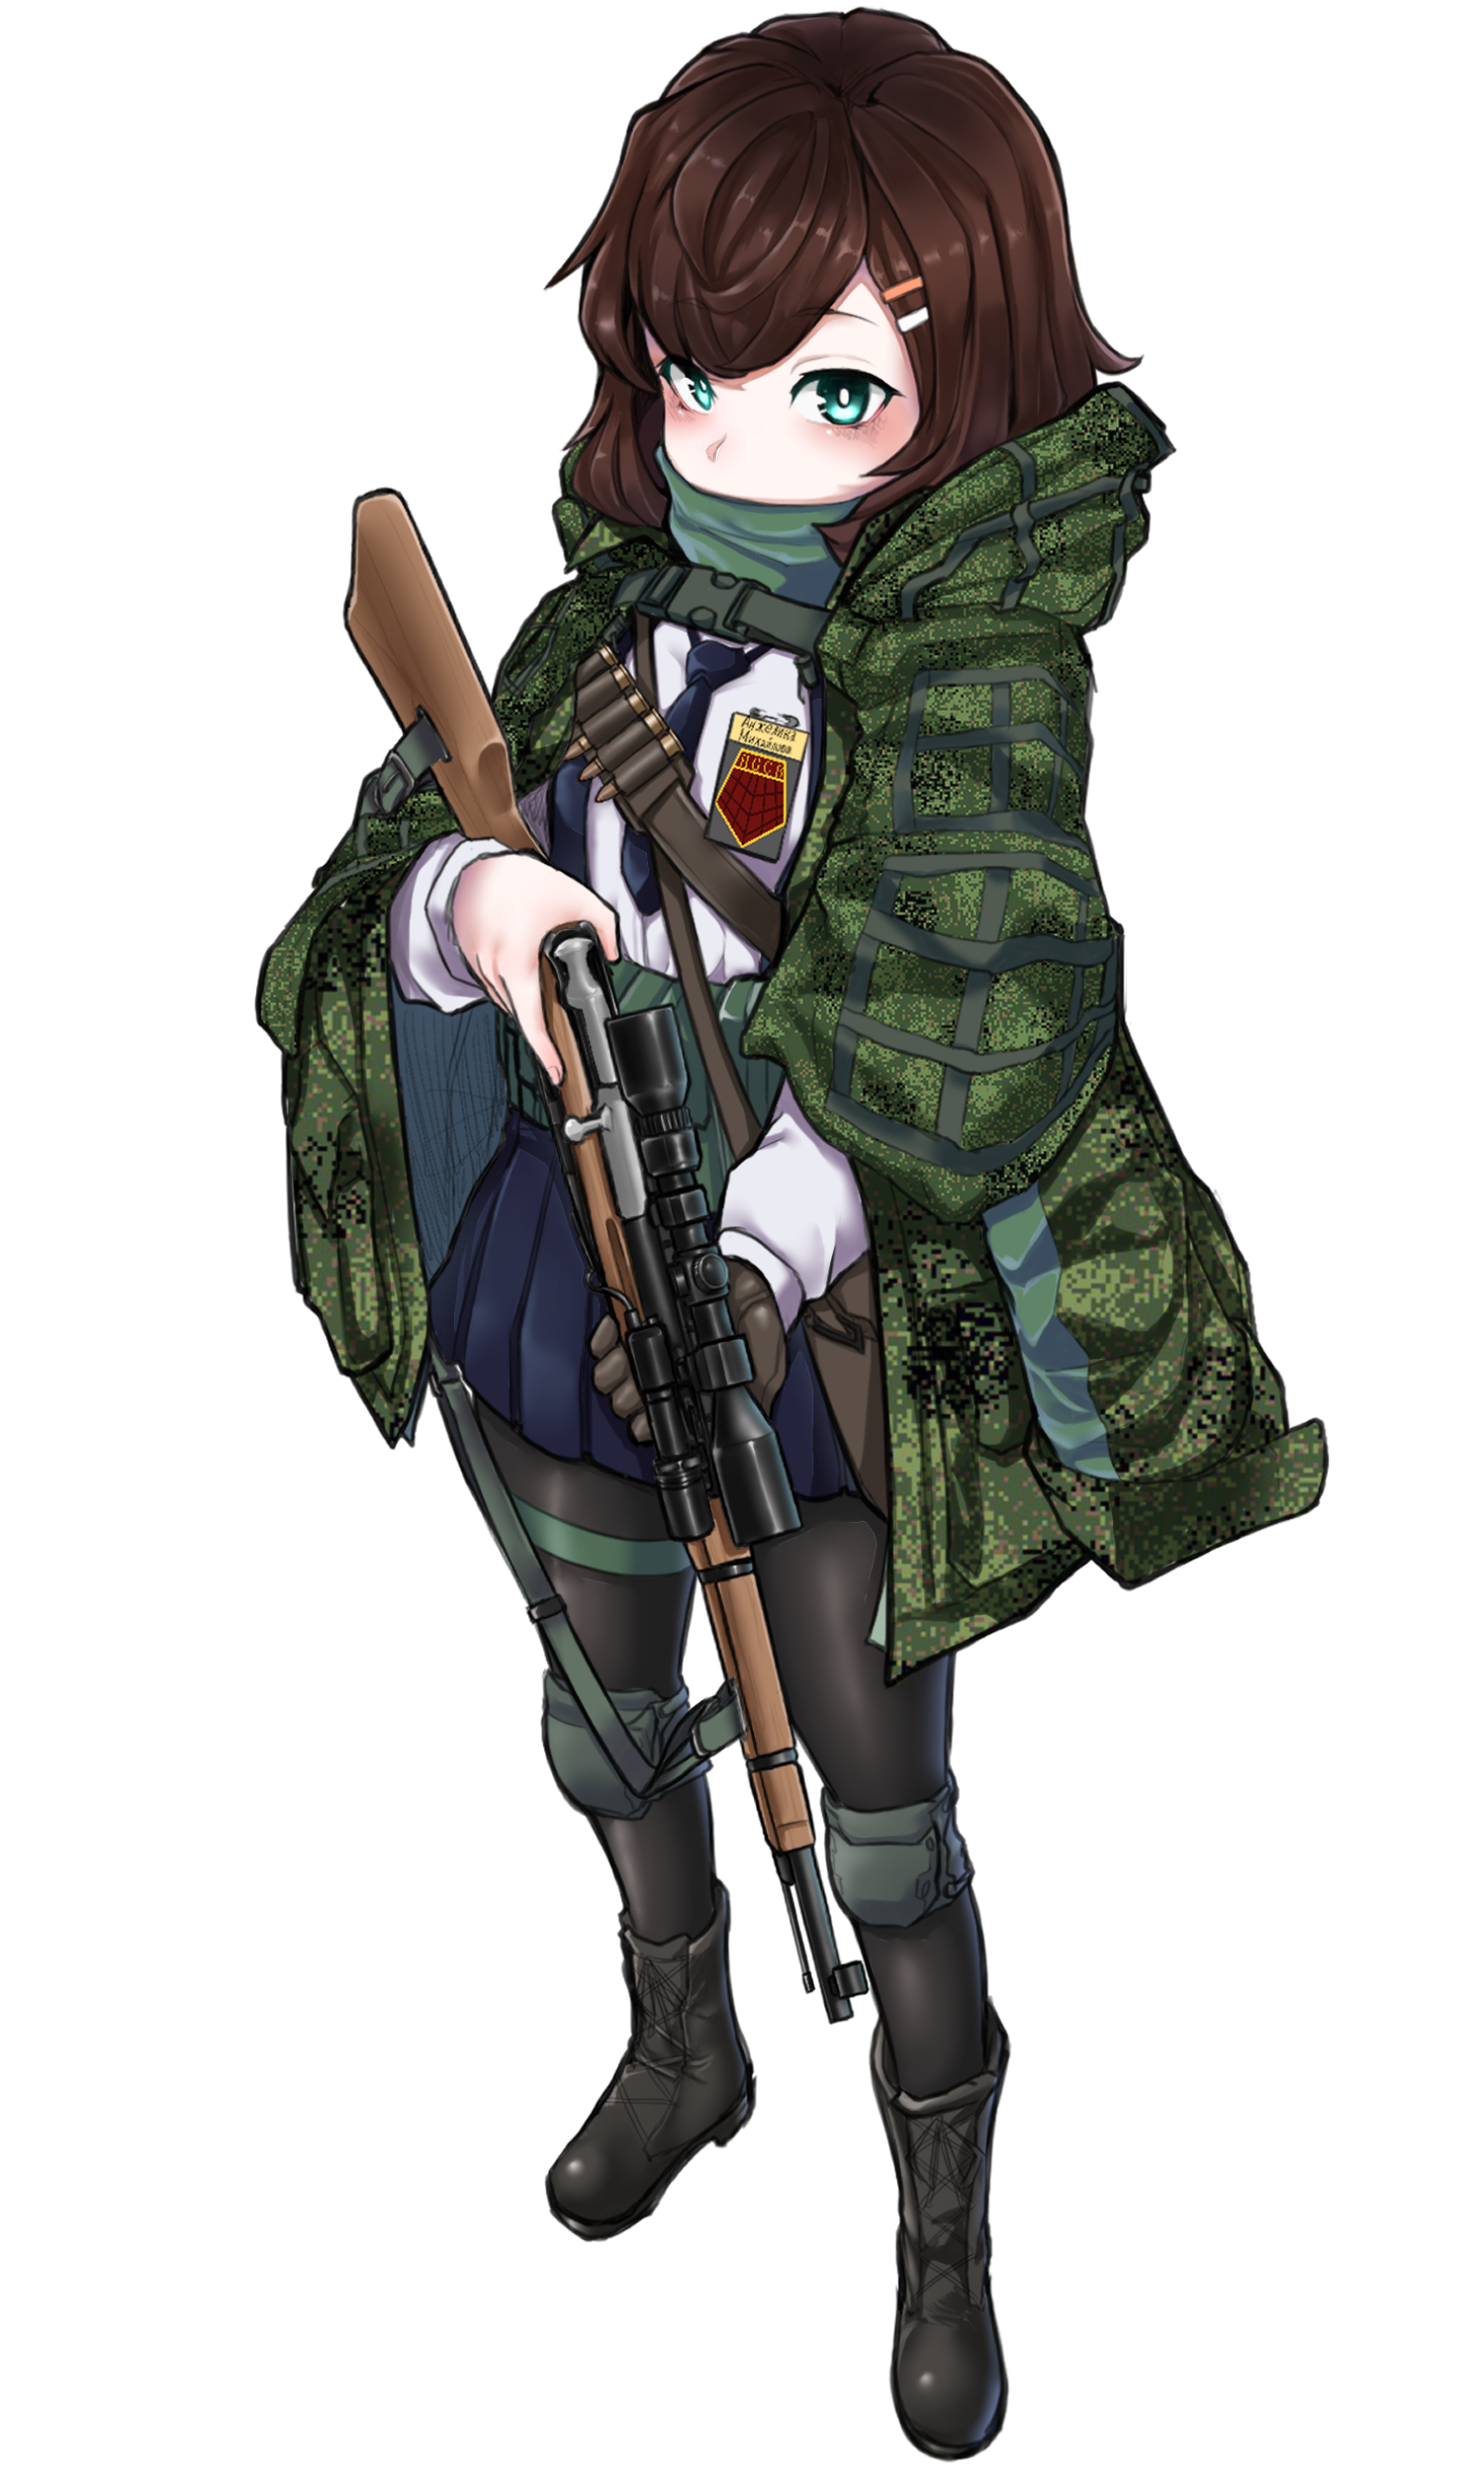 General Yagokoro of the Imperial Lunar Army TouhouArt